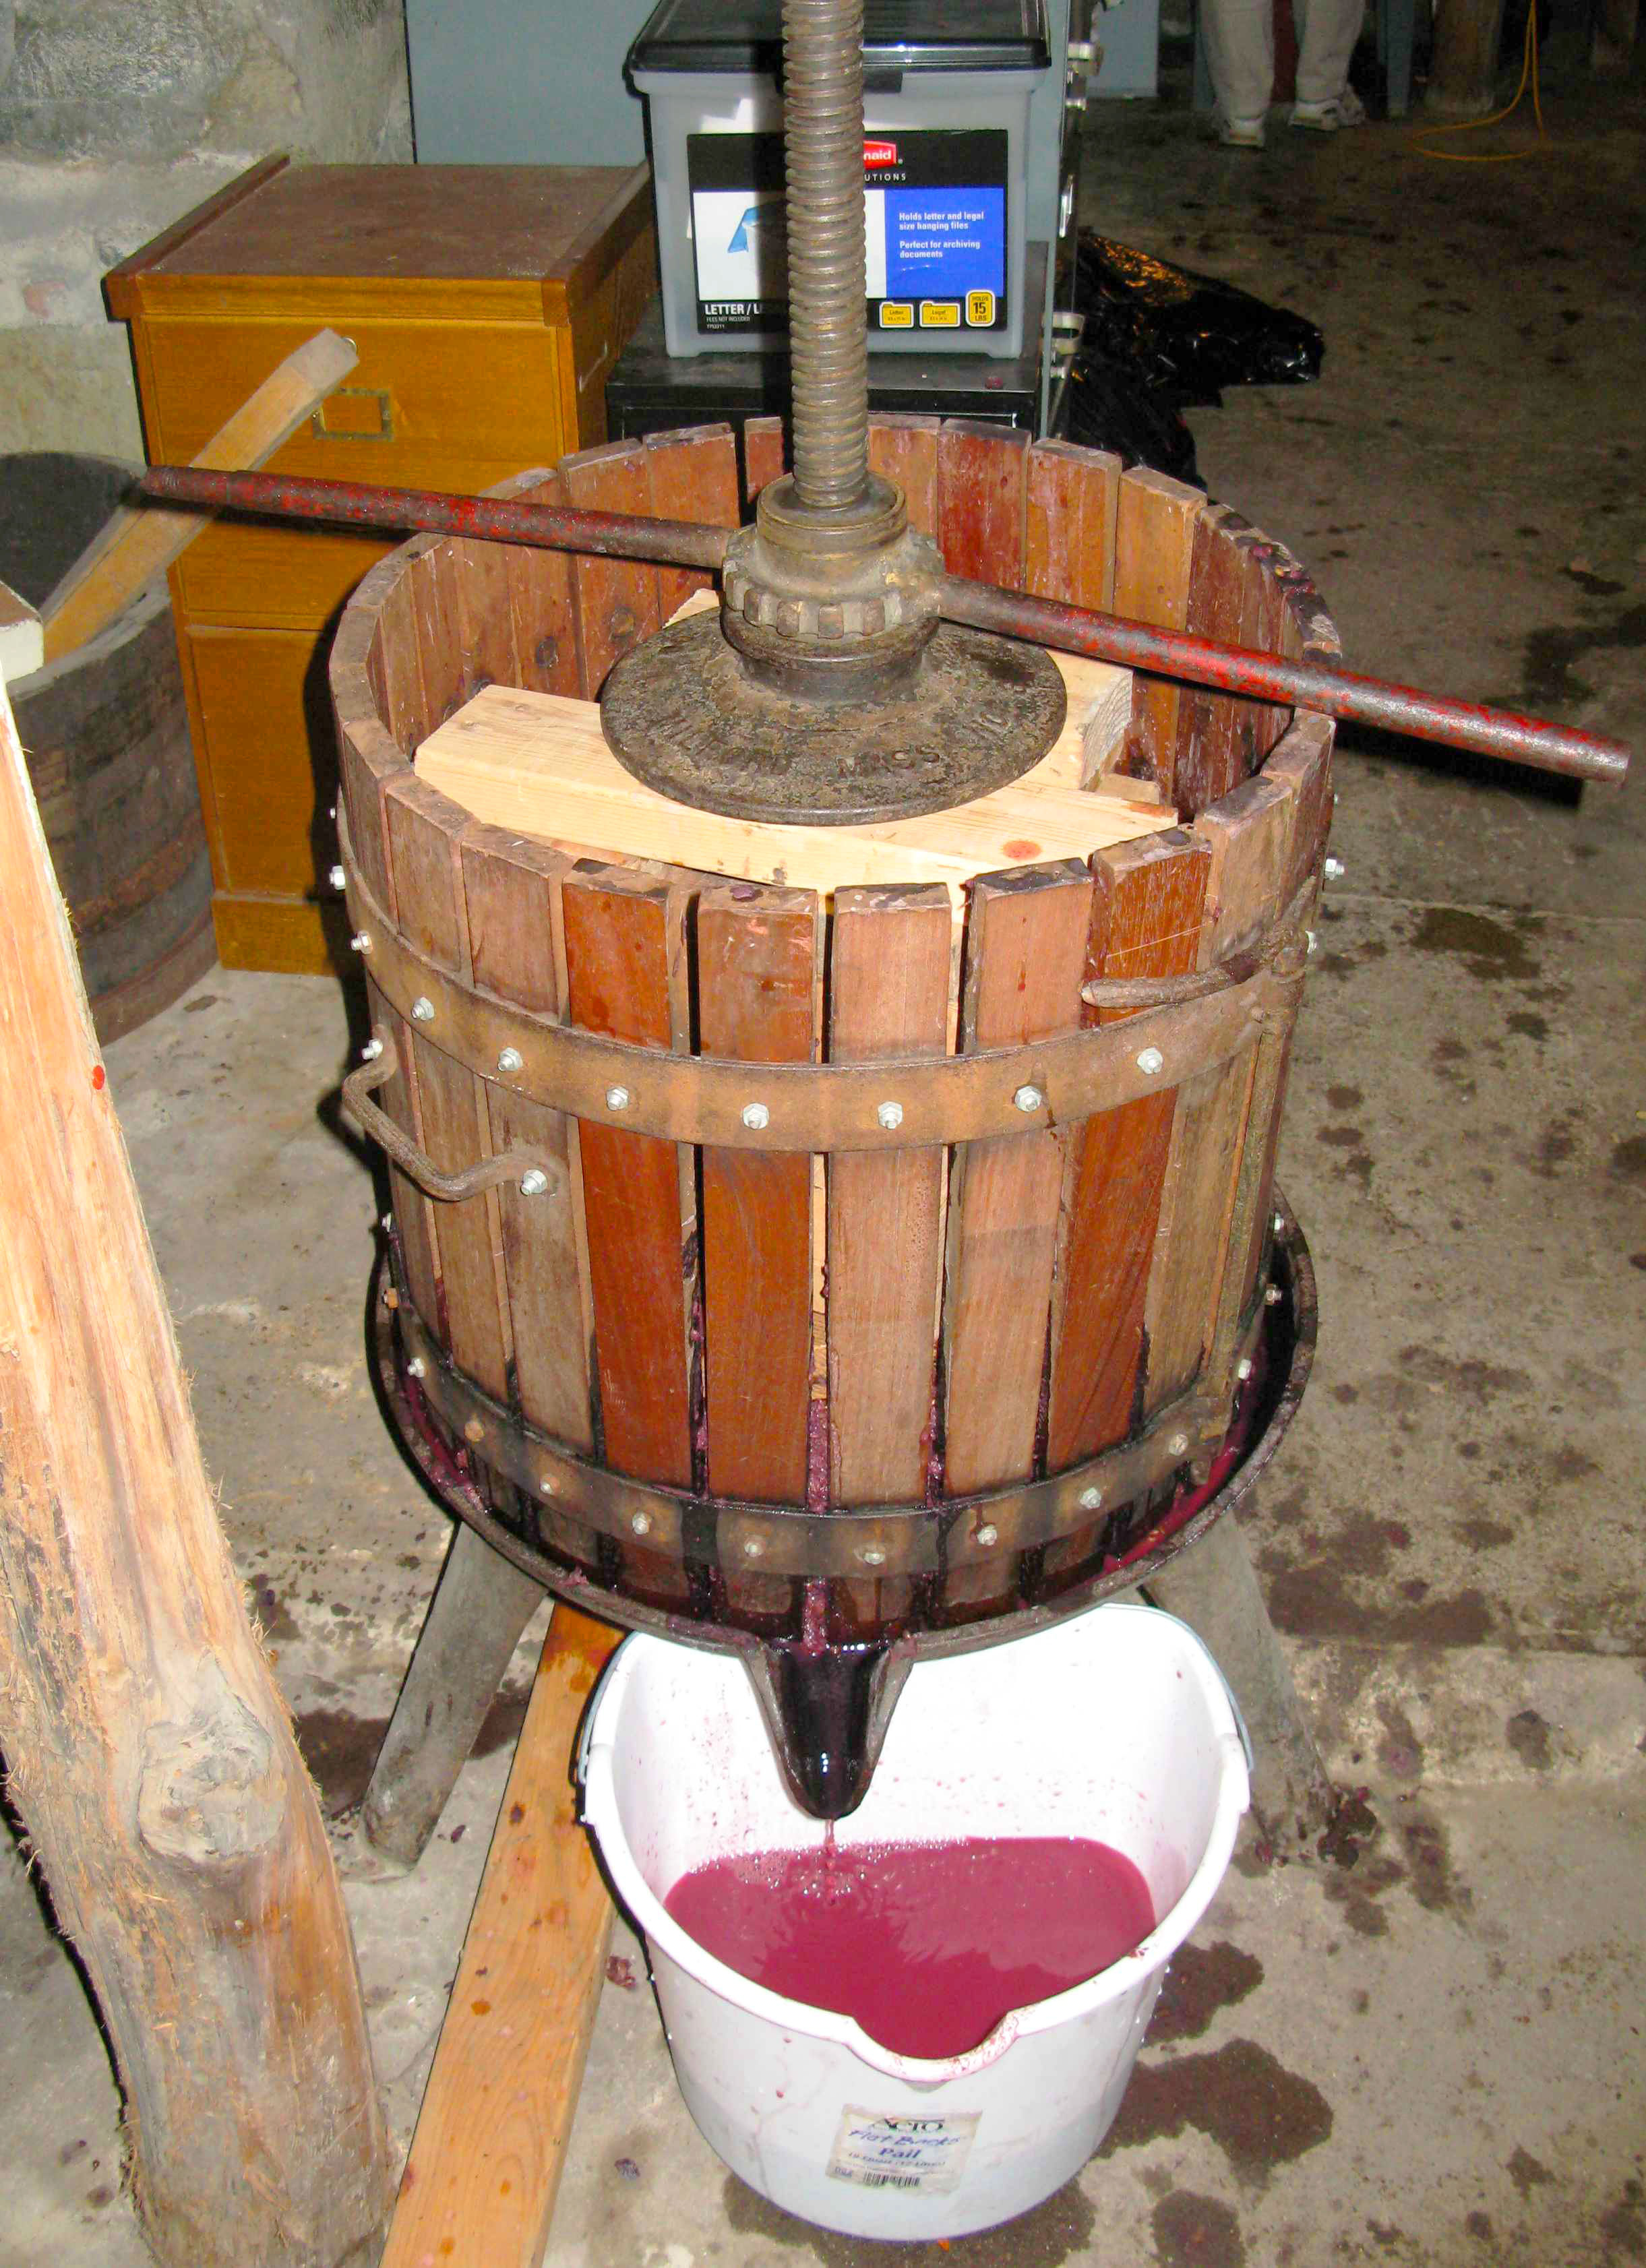 Wine press making juice